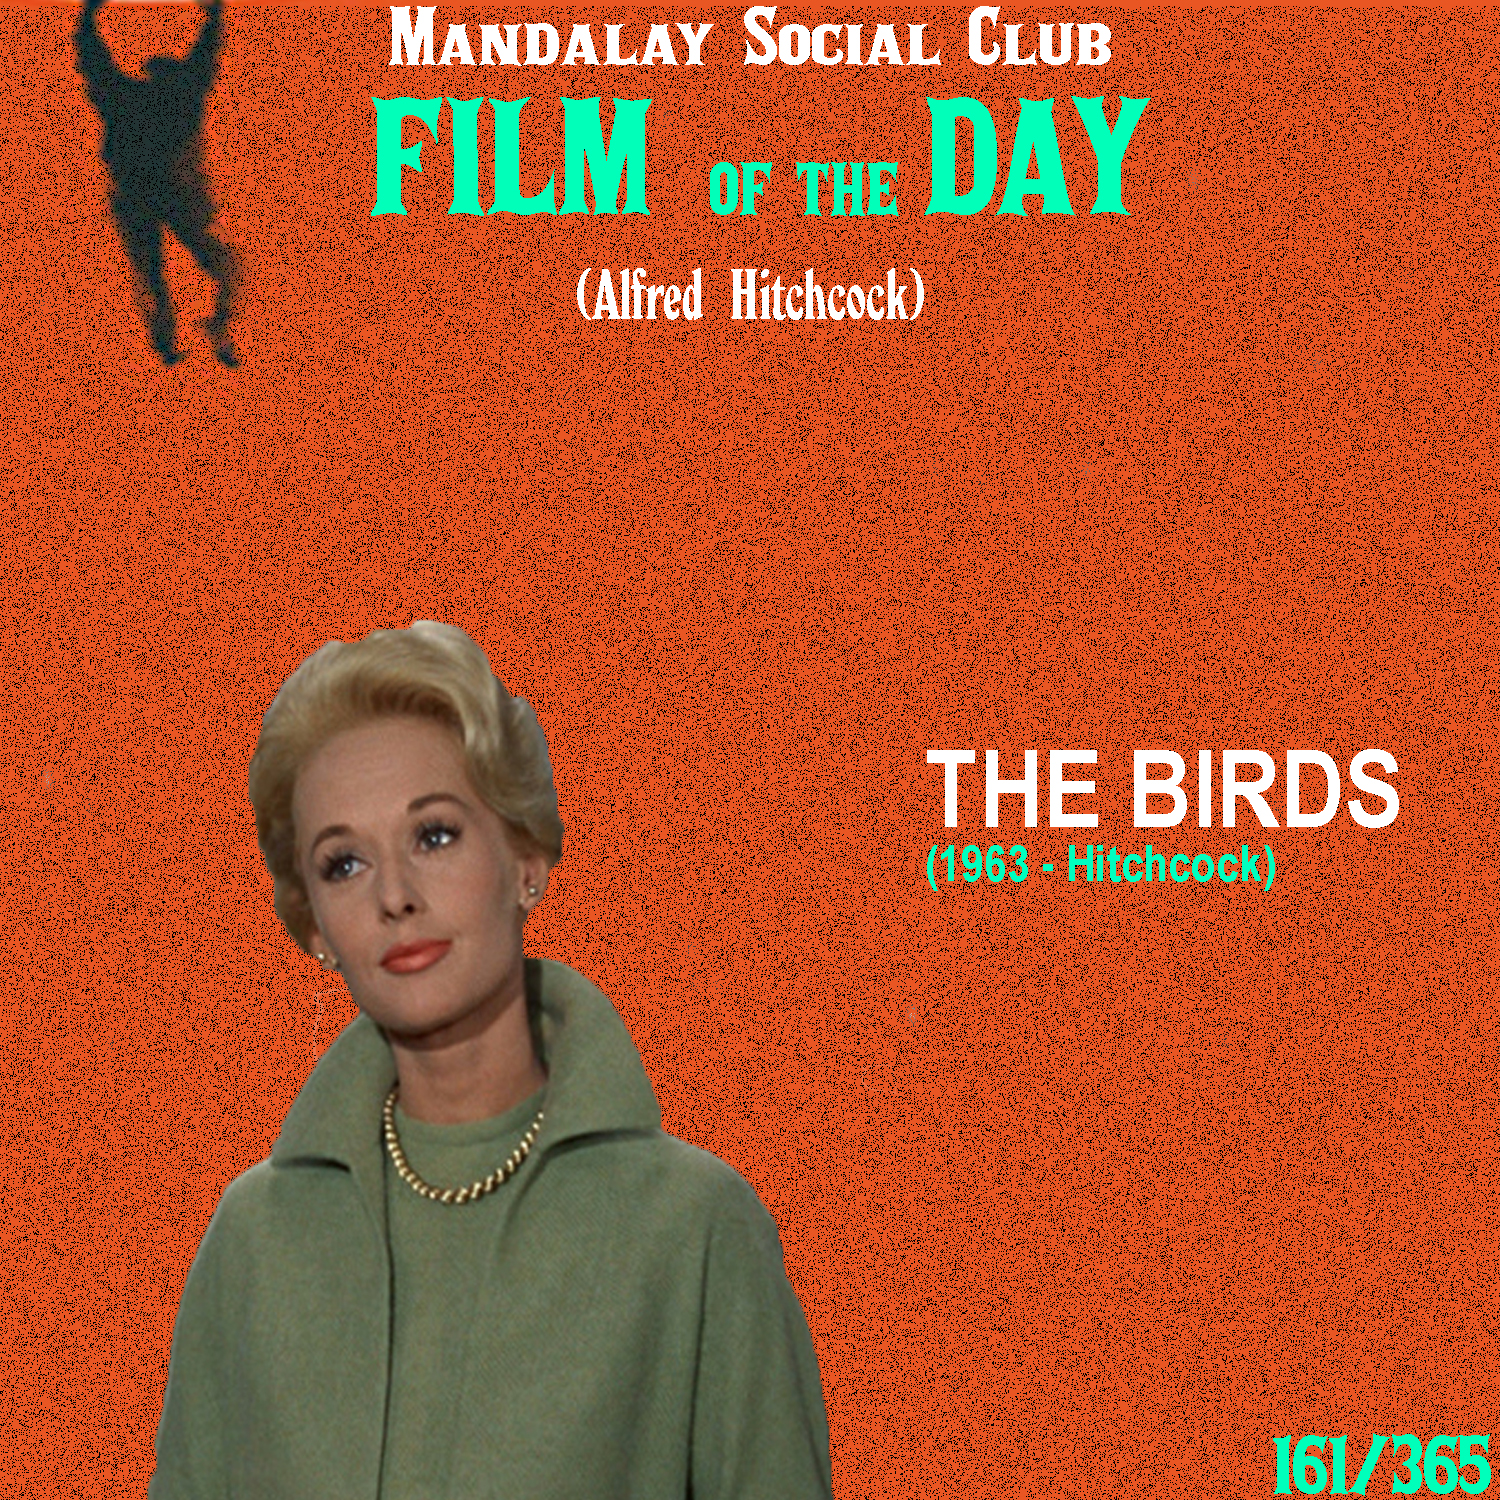 THE BIRDS     (dir. Alfred Hitchcock)    The Birds  was Hitchcock's follow up to  Psycho , and coincidentally is also one of the last great films of his career.  Tippi Hedren stars as Madeline Daniels, a young socialite from San Francisco who becomes interested in criminal defense attorney Mitch Brenner, played by Rod Taylor. When she attempts to further her connection with Mitch by bringing him a couple of lovebirds he was looking to buy, she's led to Bodega Bay; the costal town where Mitch stays with his sister and mother on the weekends. It's there in Bodega Bay that swarms of seagulls, crows, and sparrows begin attacking the unsuspecting citizens with no apparent motive.  Hitchcock loved the theme of 'birds' and it was actual an incredibly present motif in his previous film  Psycho . It's no wonder he wanted to dive into this theme fully with  The Birds . While the resulting film isn't quite as frightening or exciting as the previous, it does still offer up countless lessons in building suspense. In particular, the scene where the unsuspecting Madeline sits in front of a gaggle of birds perched on a jungle gym is one of the finest examples on how to build suspense using the cinematic form.    3.5/5     WATCH: Ok.ru (FREE), iTunes (RENT)